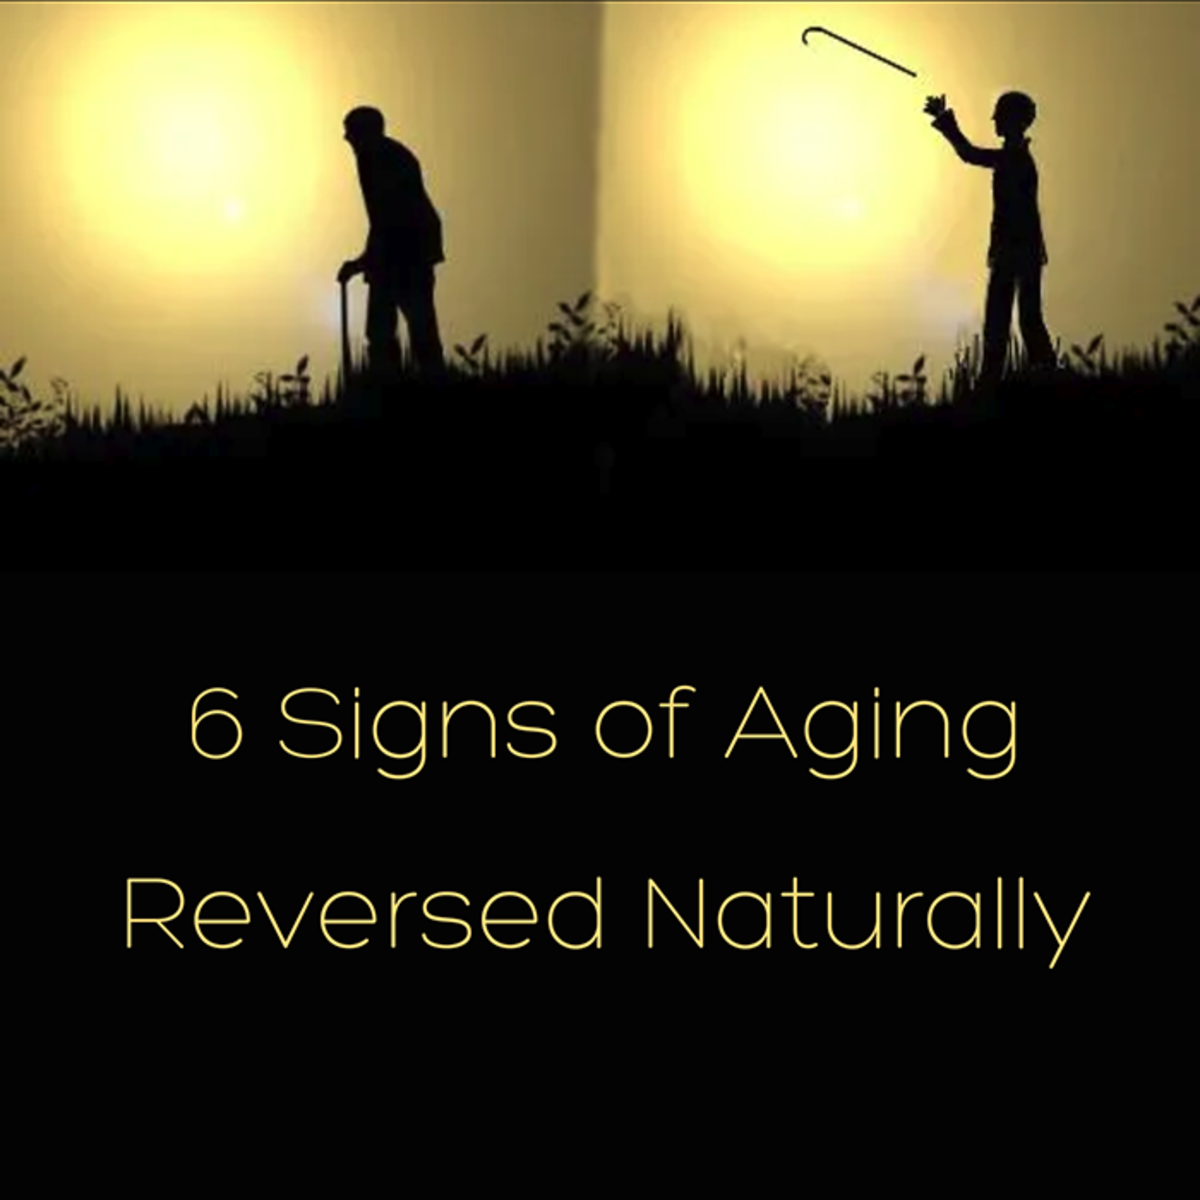 How to Reverse the Aging Process Naturally — 6 Signs of Aging